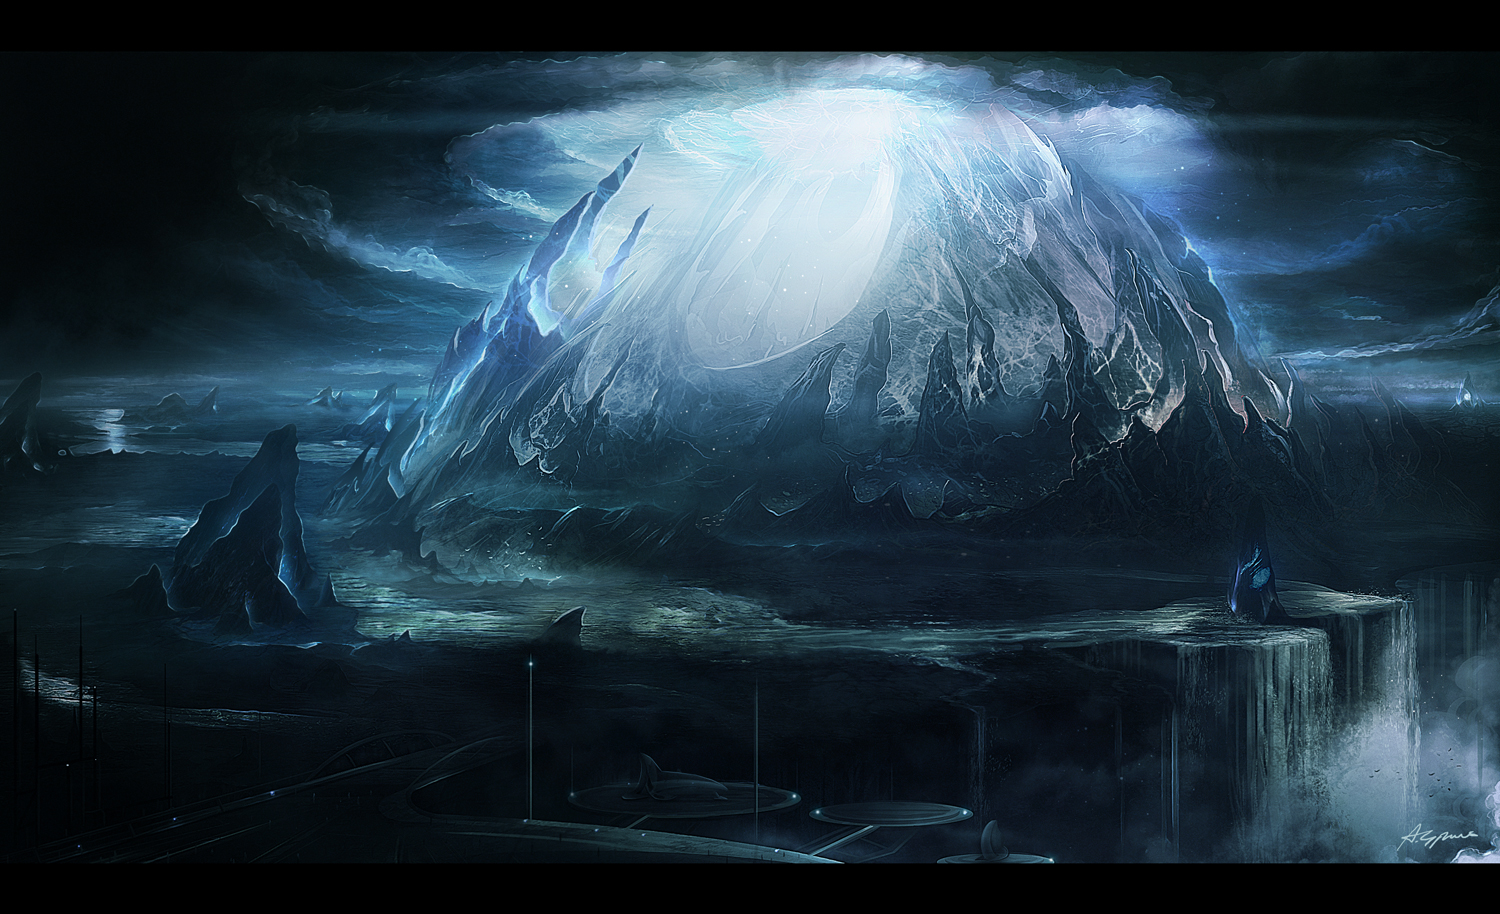 Epicenter by nilTrace